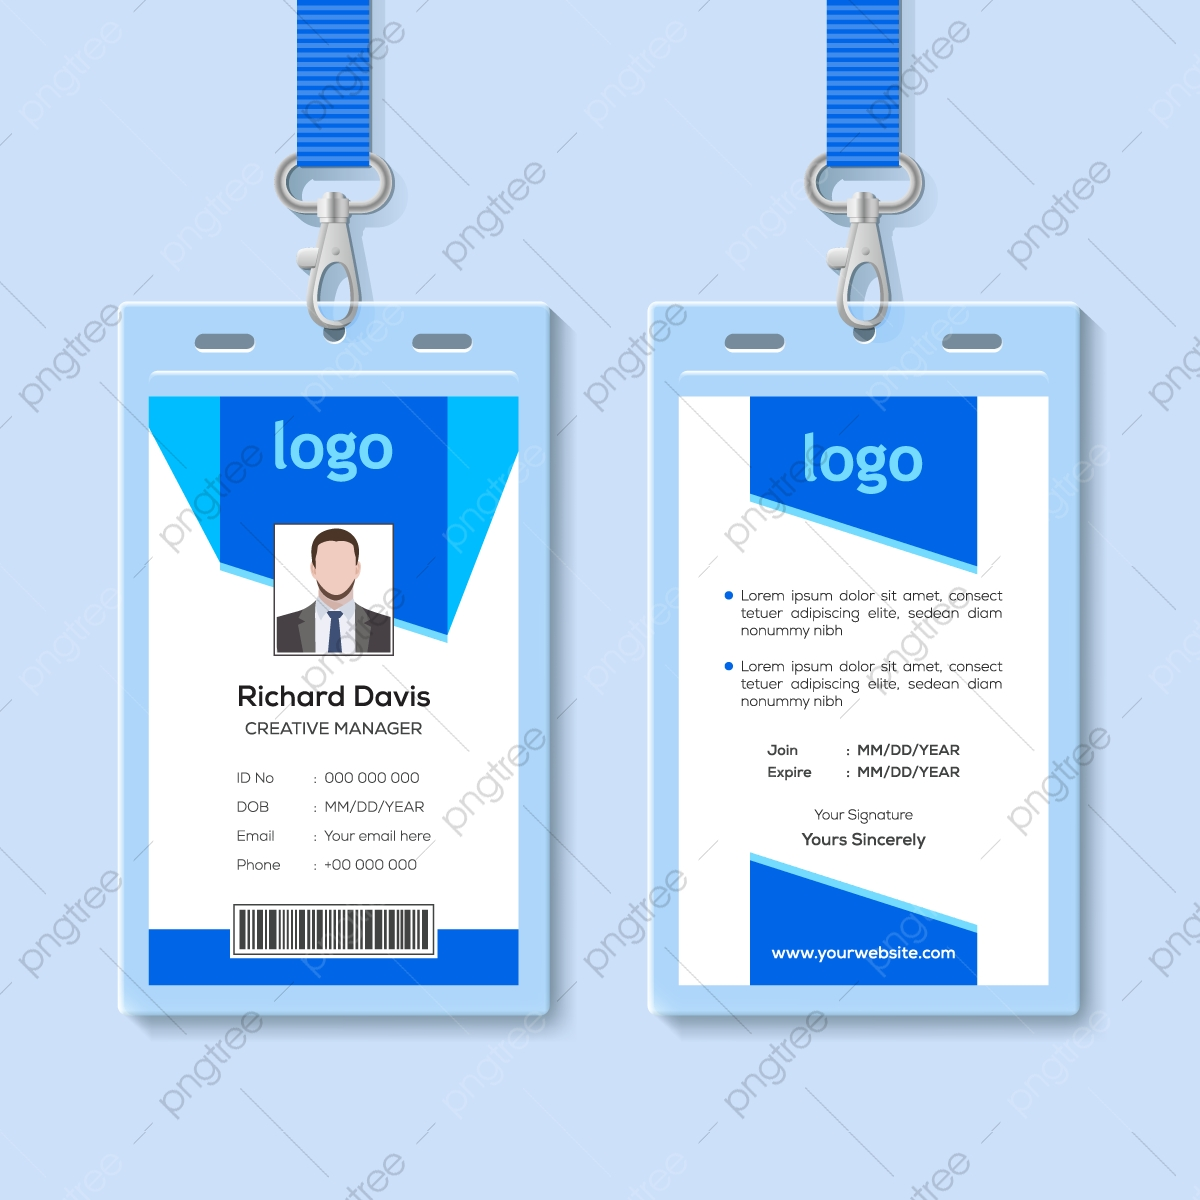 Blue Employee Identity Card Template Template Download on Pngtree Pertaining To Conference Id Card Template